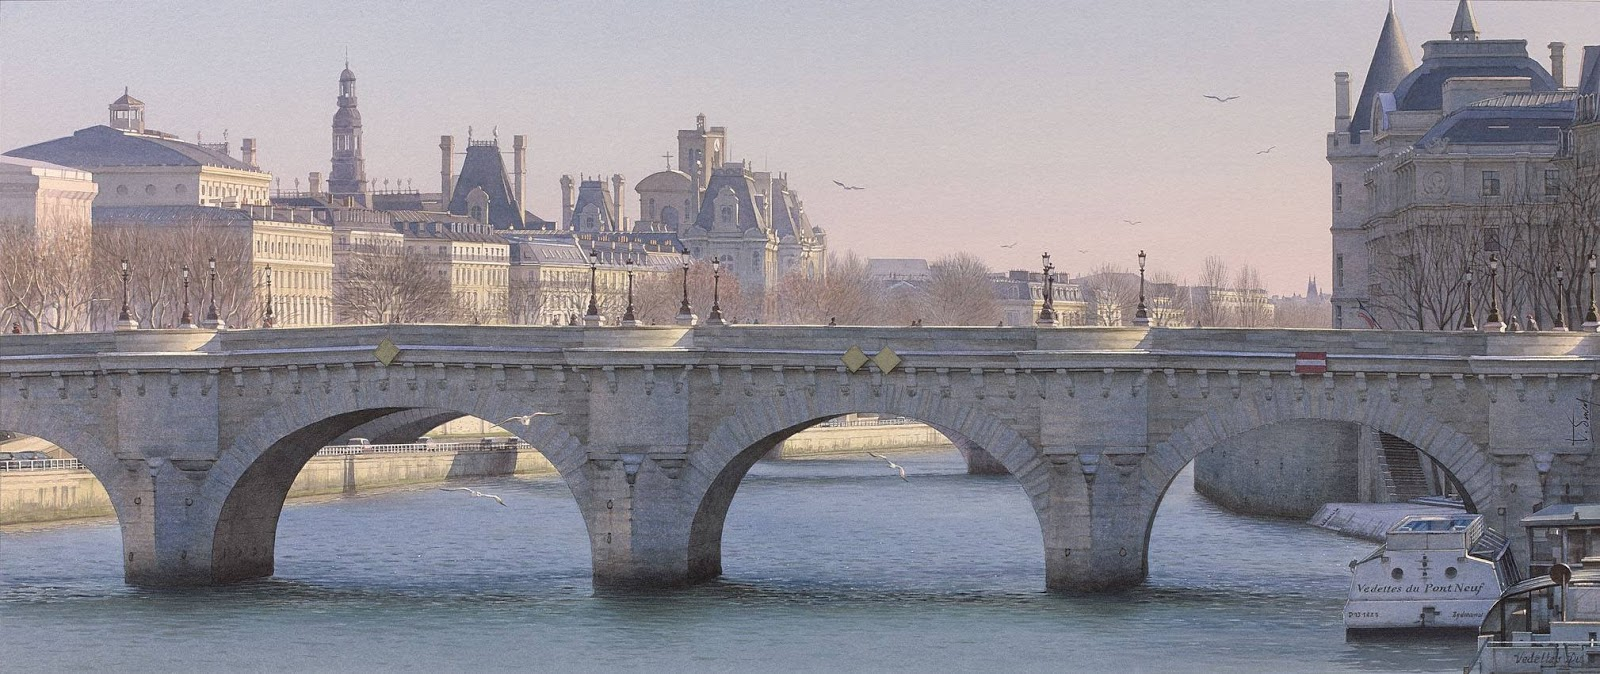 9 seagulls and the Pont Neuf,?